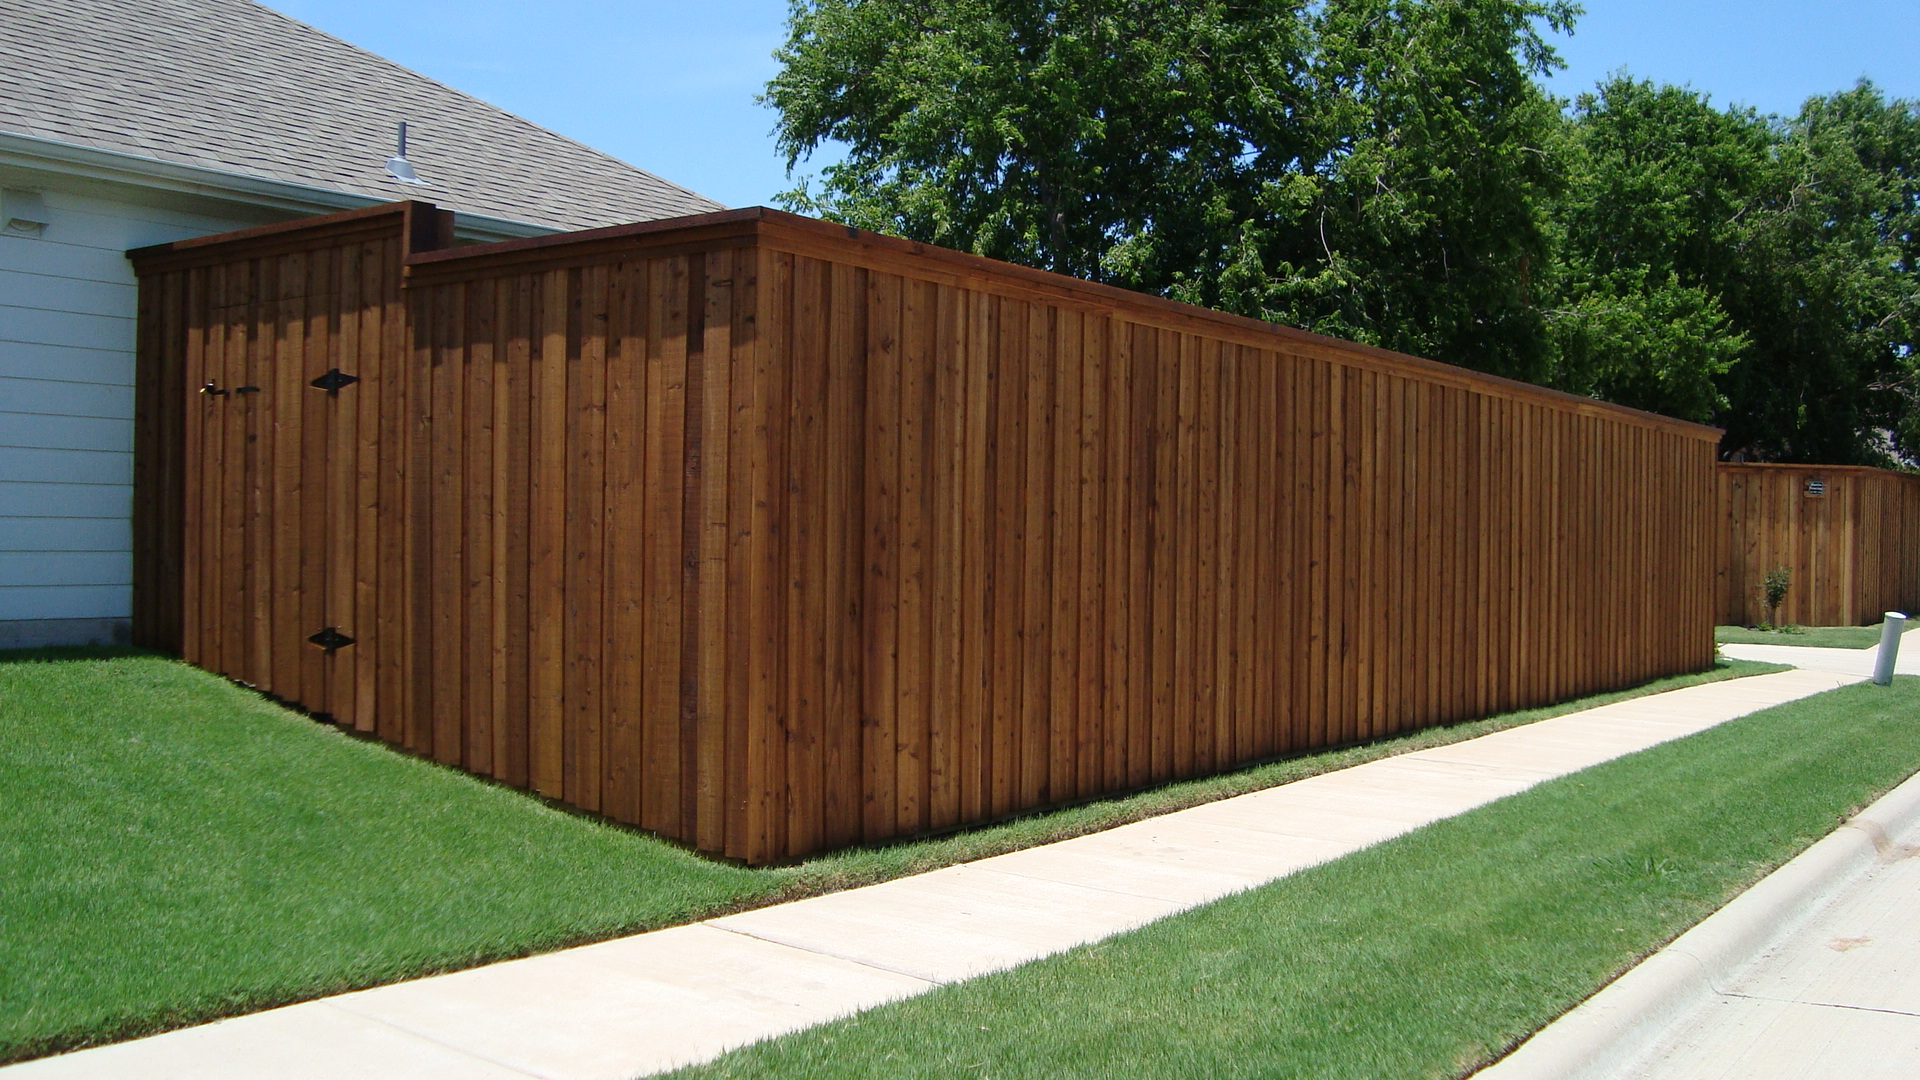 texas best stain fence staining repair outdoor solutions